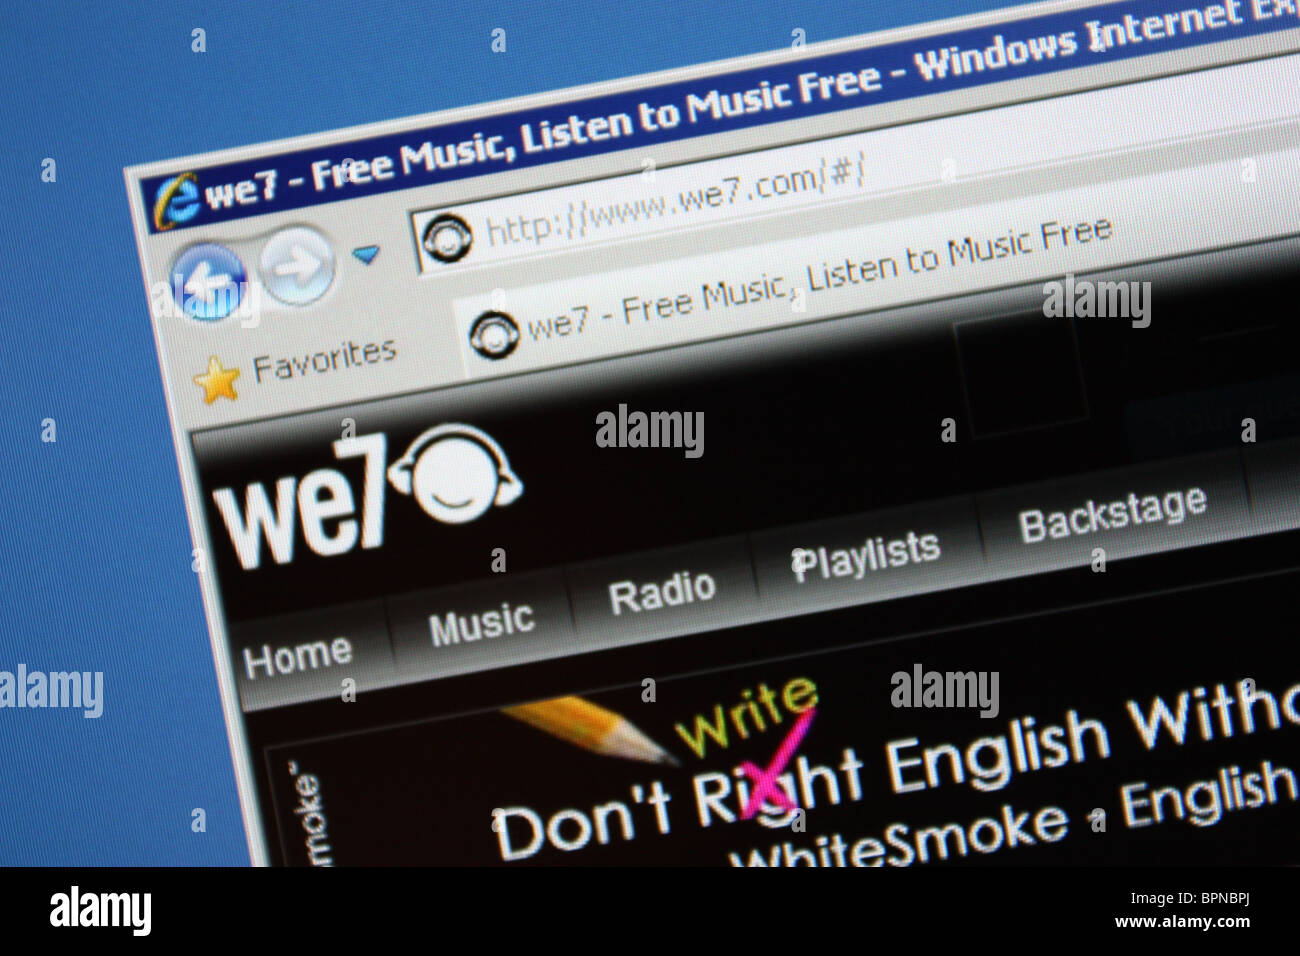 we7 we7 com online music streaming Stock Photo: 31203050 - Alamy